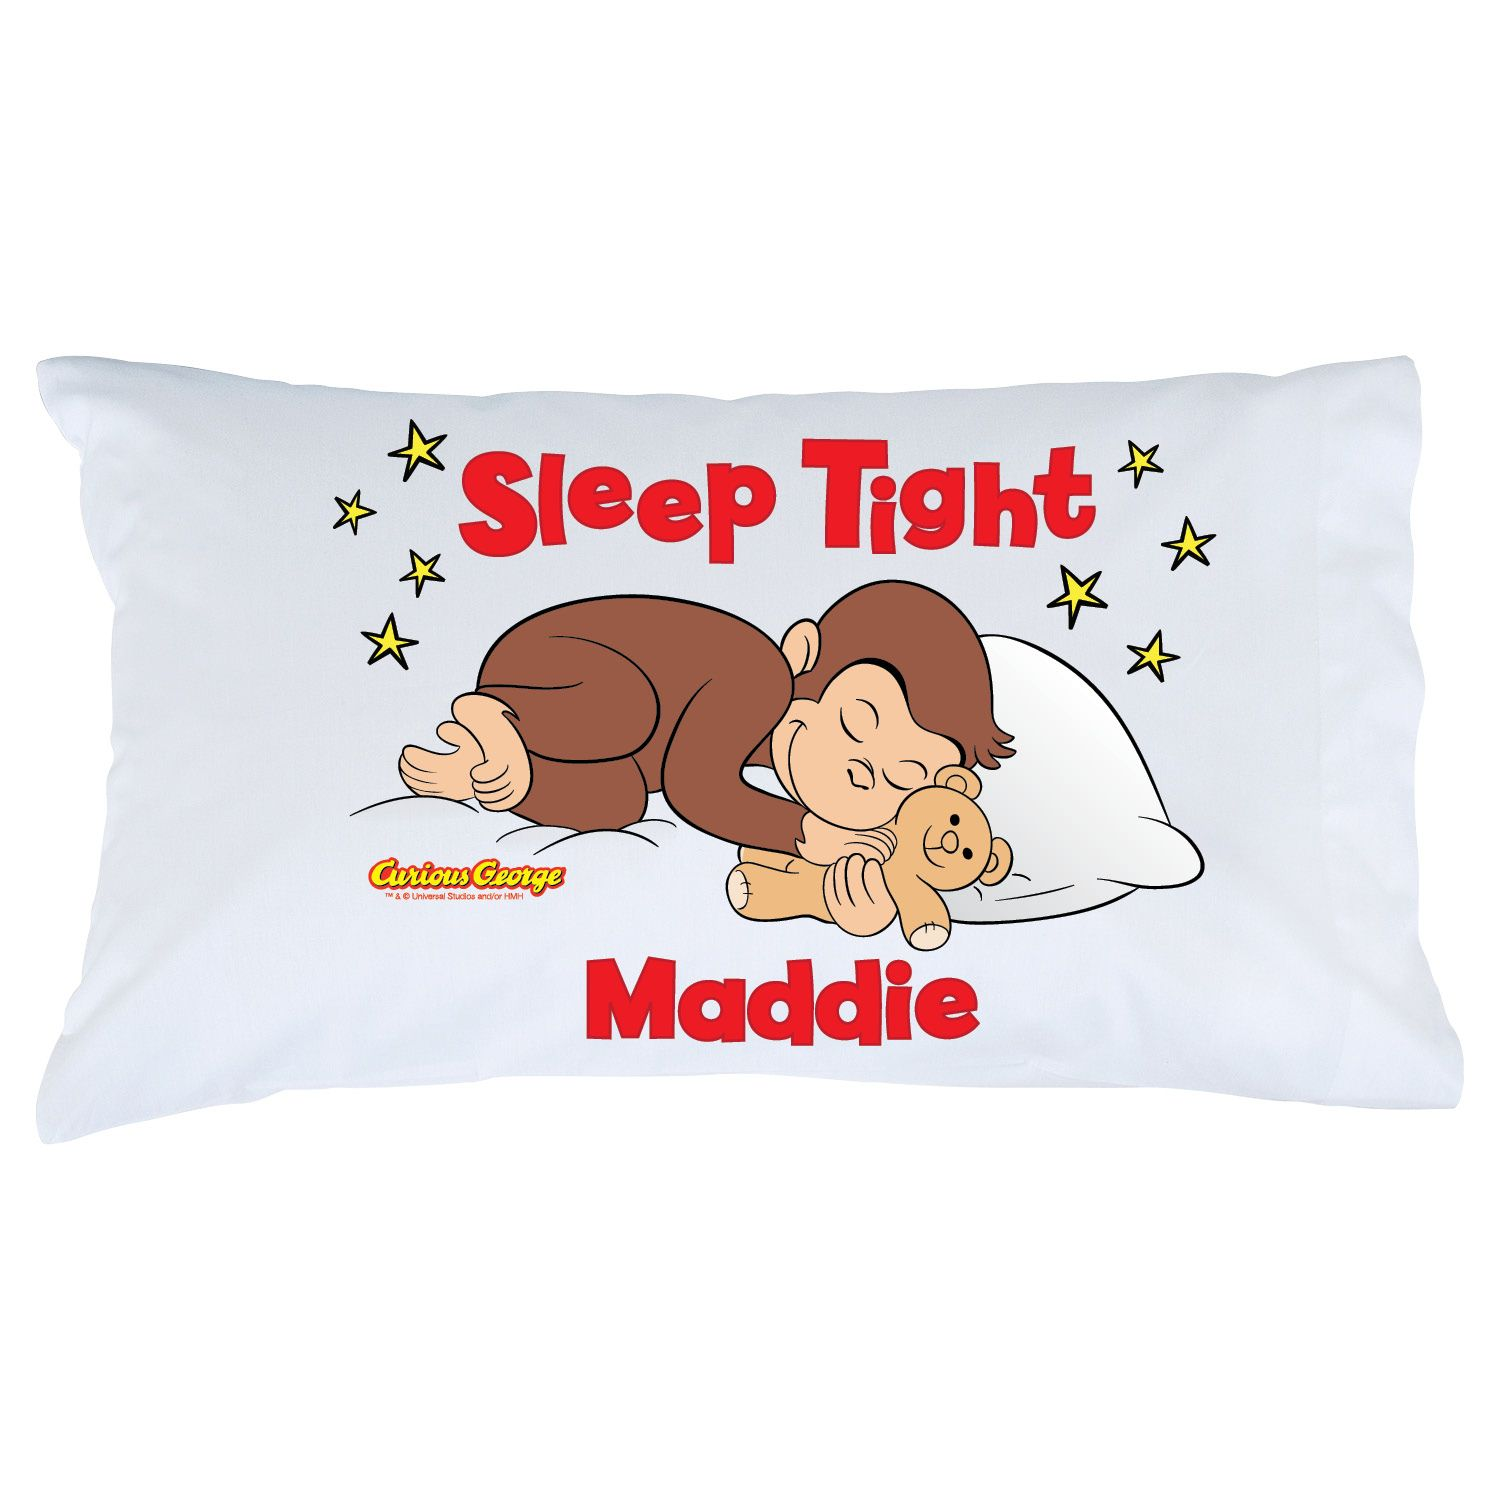 Our Curious George Sleep Tight Pillowcase Displays The Little Monkey  Nestled In For Bed With A Pillow And His ...